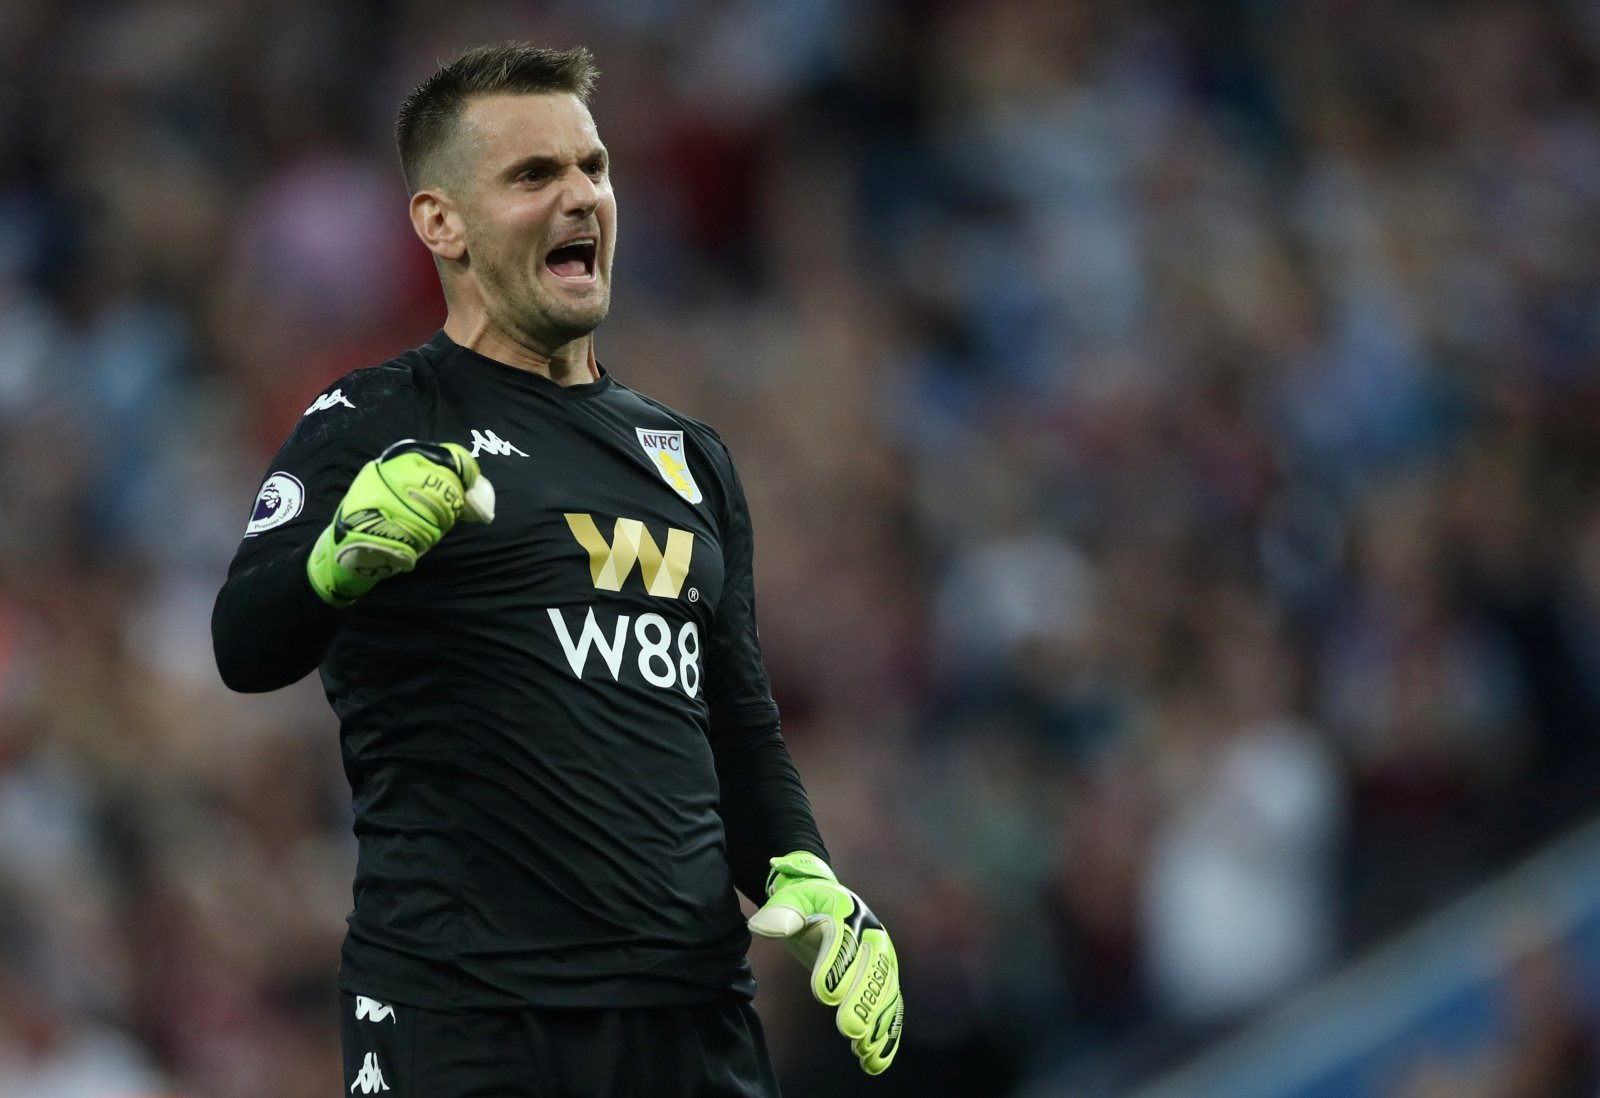 Aston Villa: Fans respond to Tom Heaton injury update